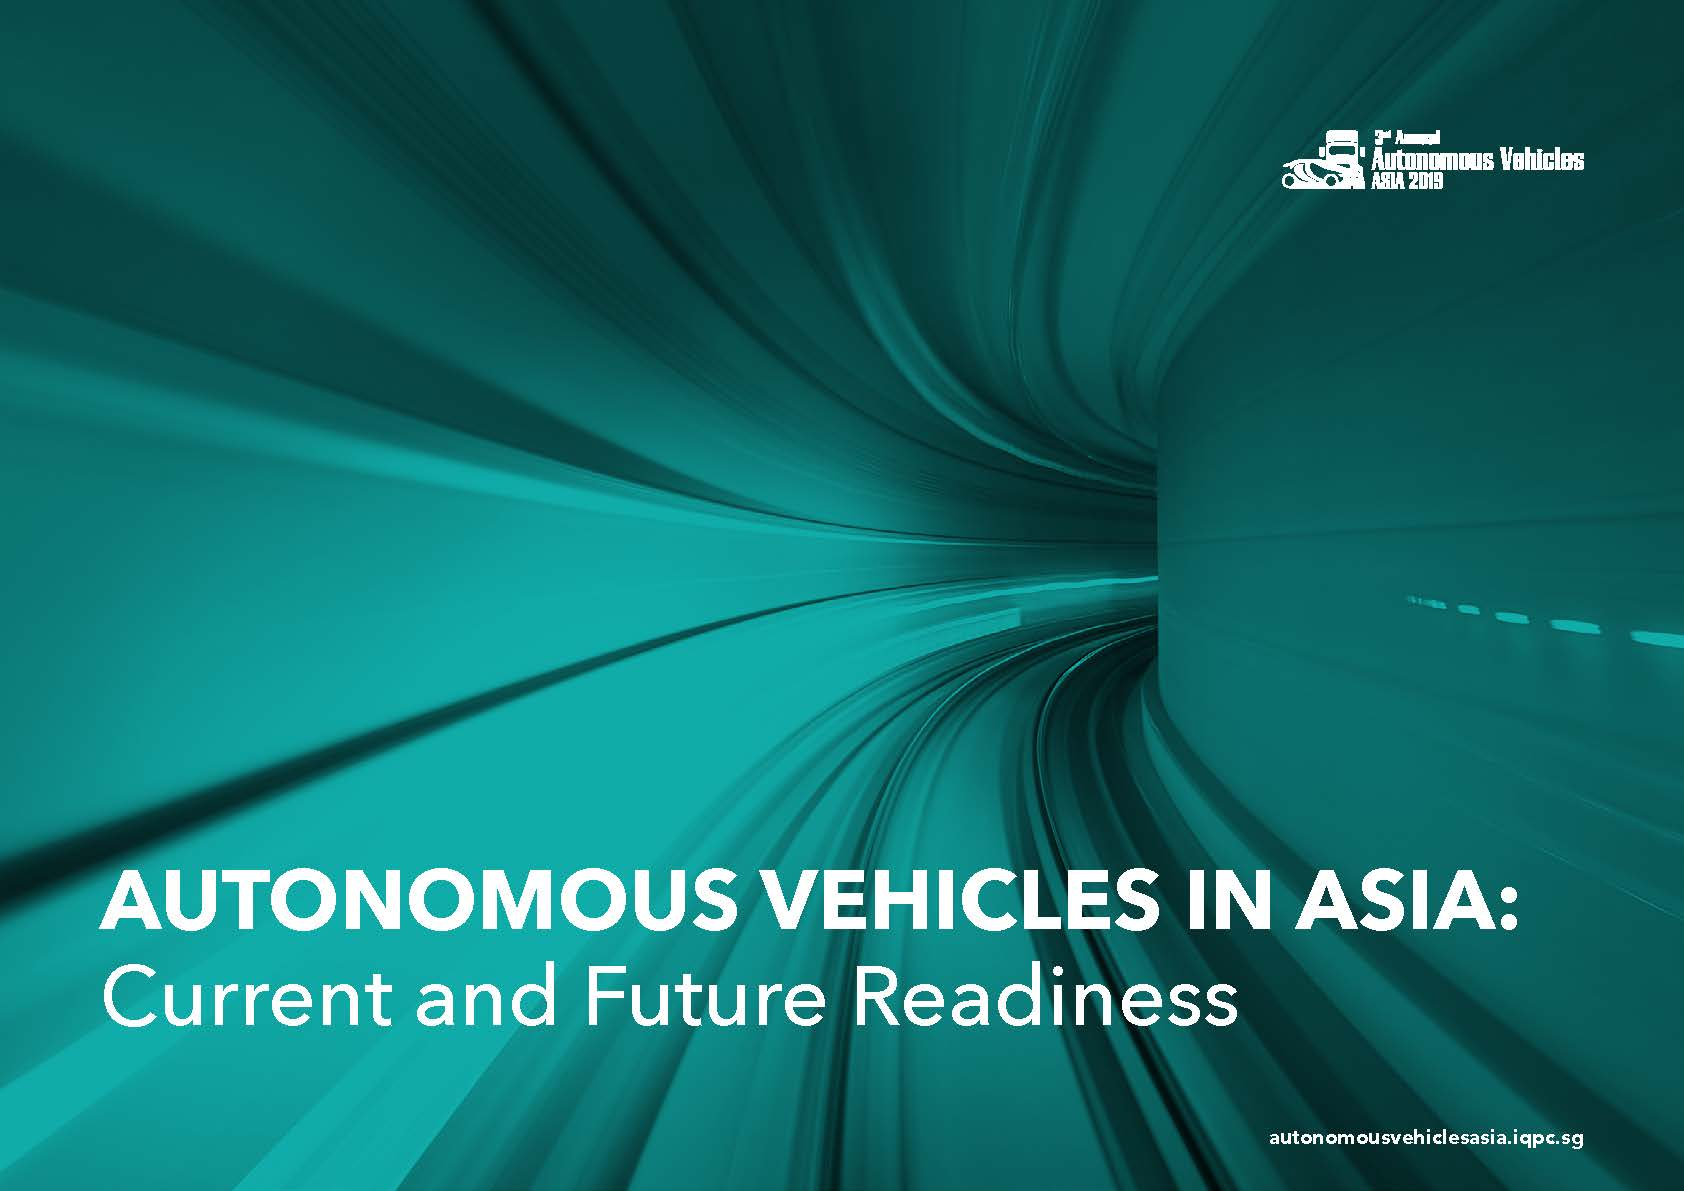 Read the Report - AUTONOMOUS VEHICLES IN ASIA: Current and Future Readiness